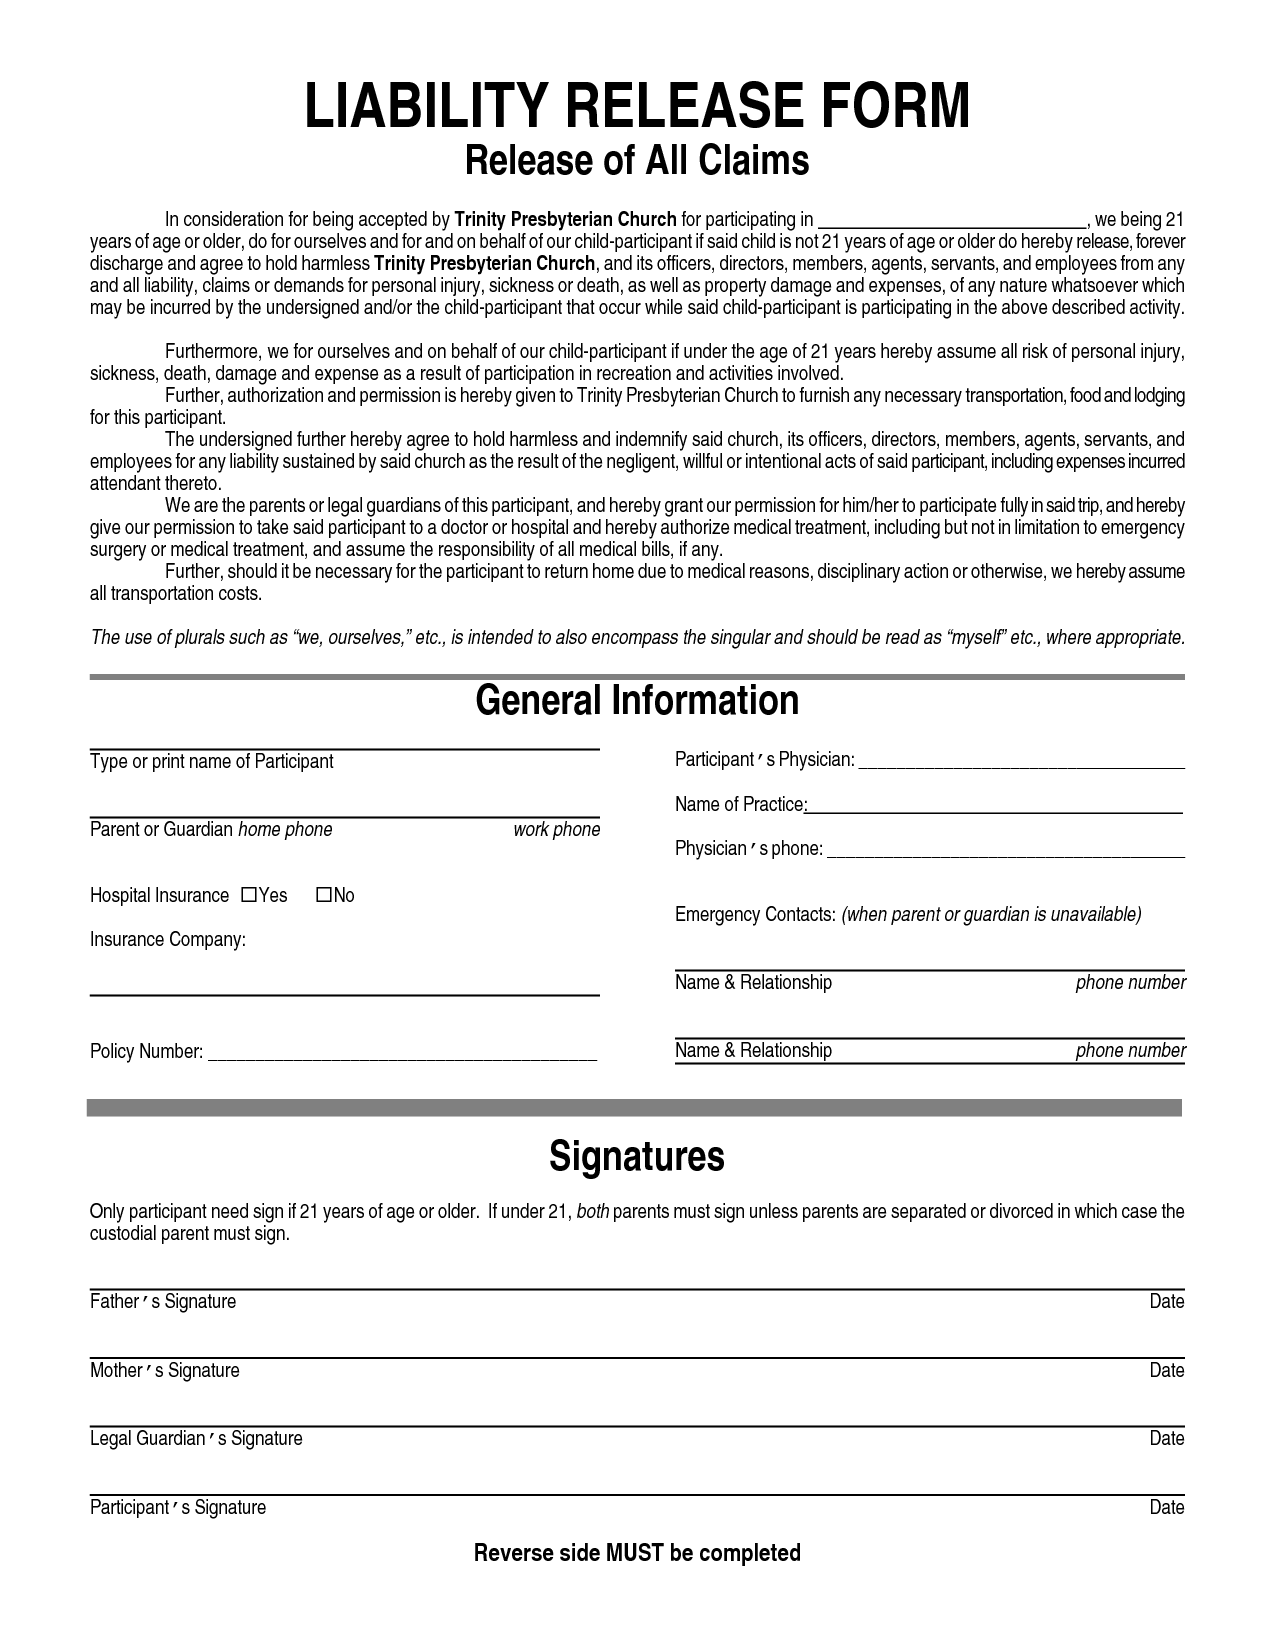 Product Liability Template Invitation Templates liability – Liability Waiver Form